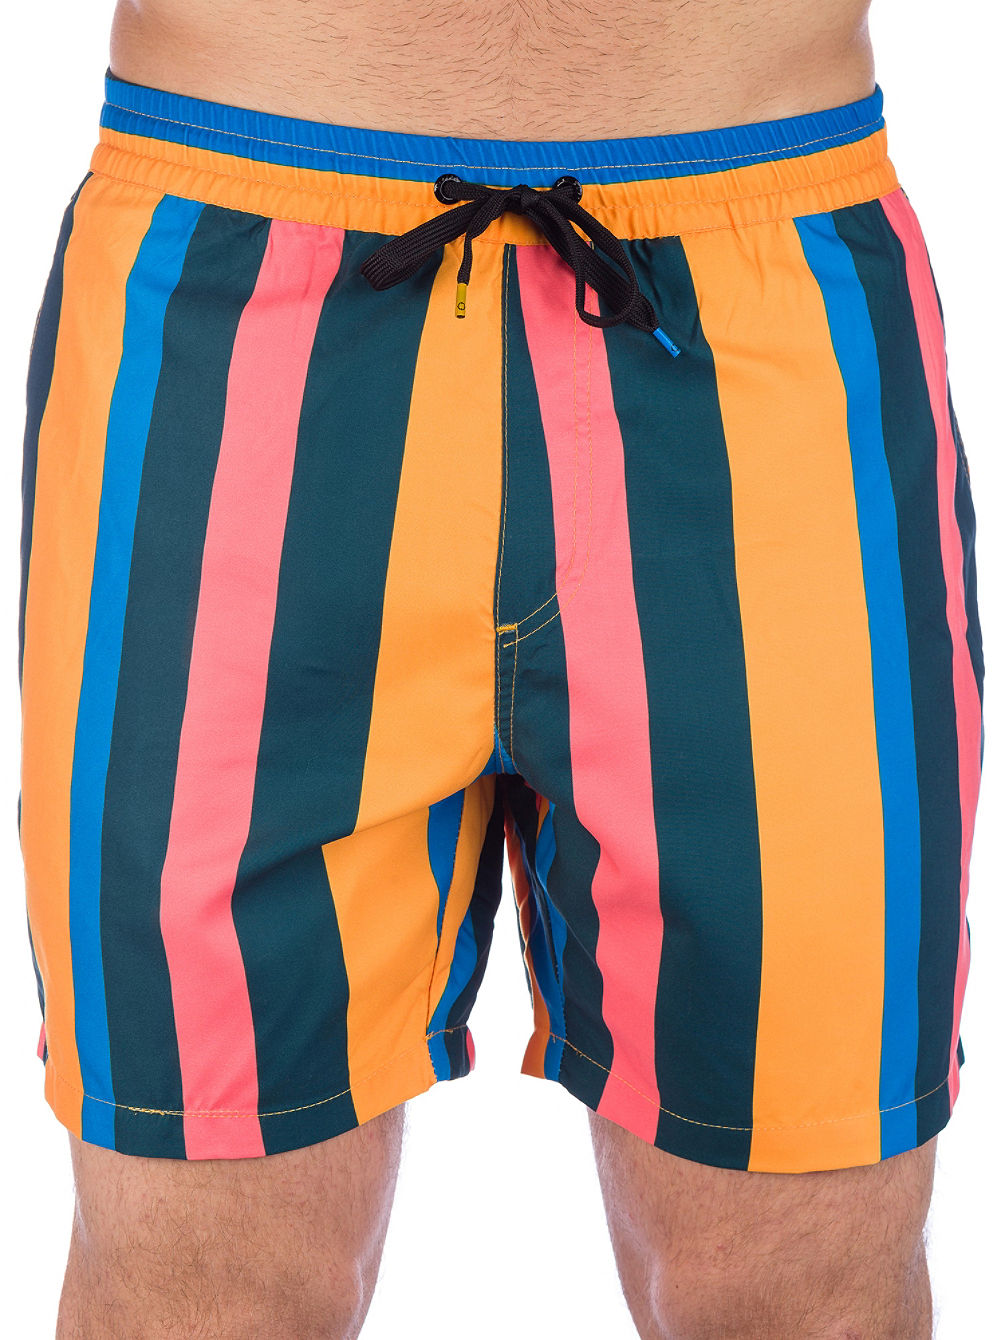 Floater 16.5 Boardshorts